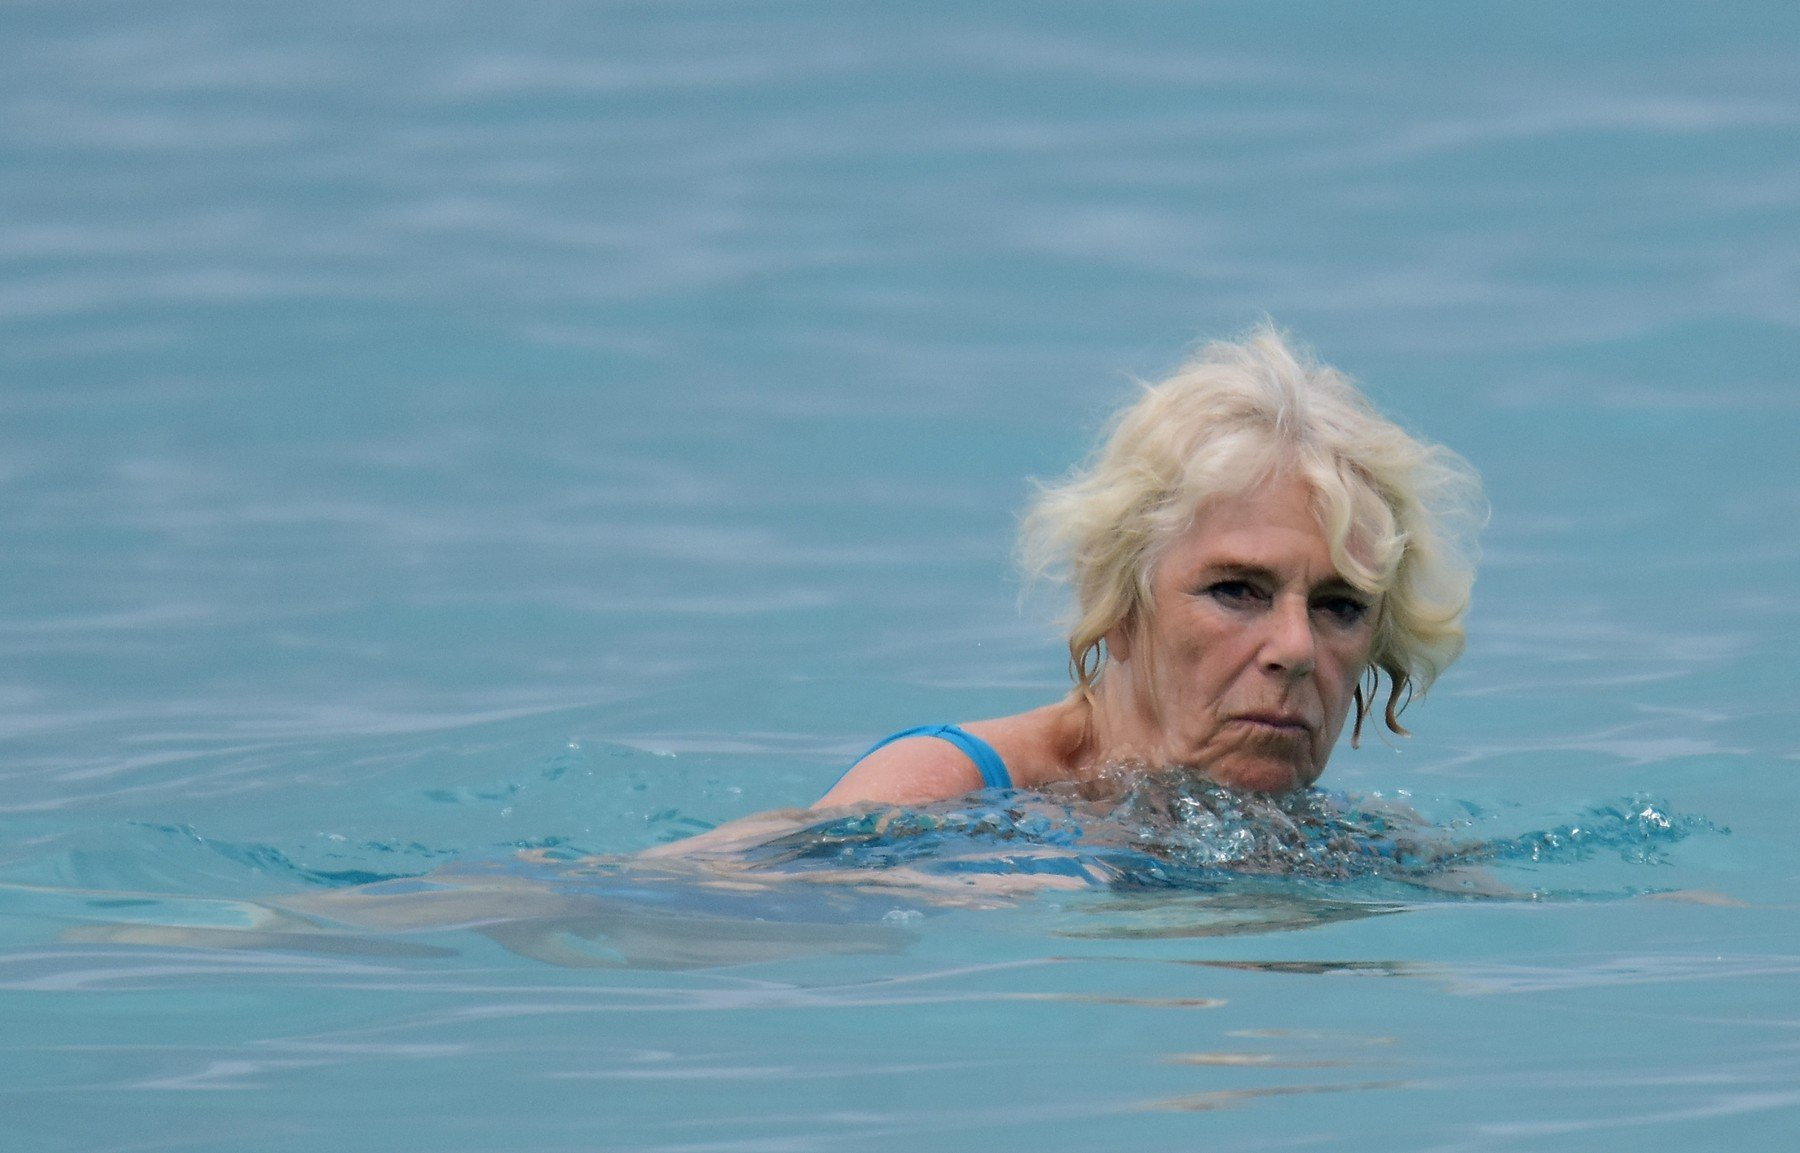 *PREMIUM EXCLUSIVE* Camilla, Duchess of Cornwall, pictured in an aqua-blue swimsuit on the beach in Barbados. Camilla, and husband Prince Charles, are touring the Caribbean representing the Queen at the behest of the Foreign Office. The highlight of their trip is a four-day tour of Cuba beginning on March 24 - the first by members of the monarchy. 18 Mar 2019, Image: 420534258, License: Rights-managed, Restrictions: World Rights, Model Release: no, Credit line: Profimedia, Mega Agency